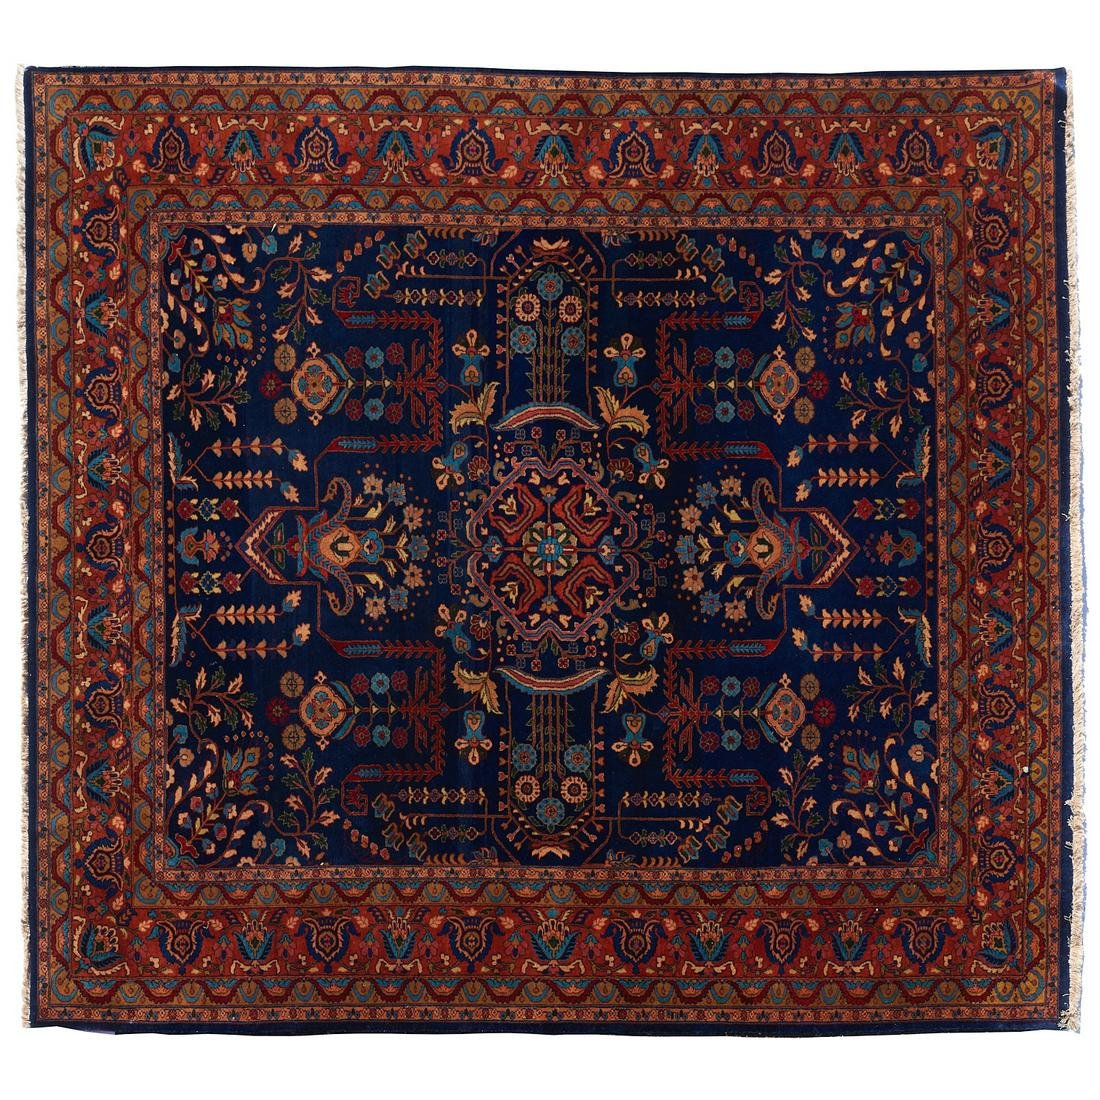 Old blue Mohajeran Sarouk carpet